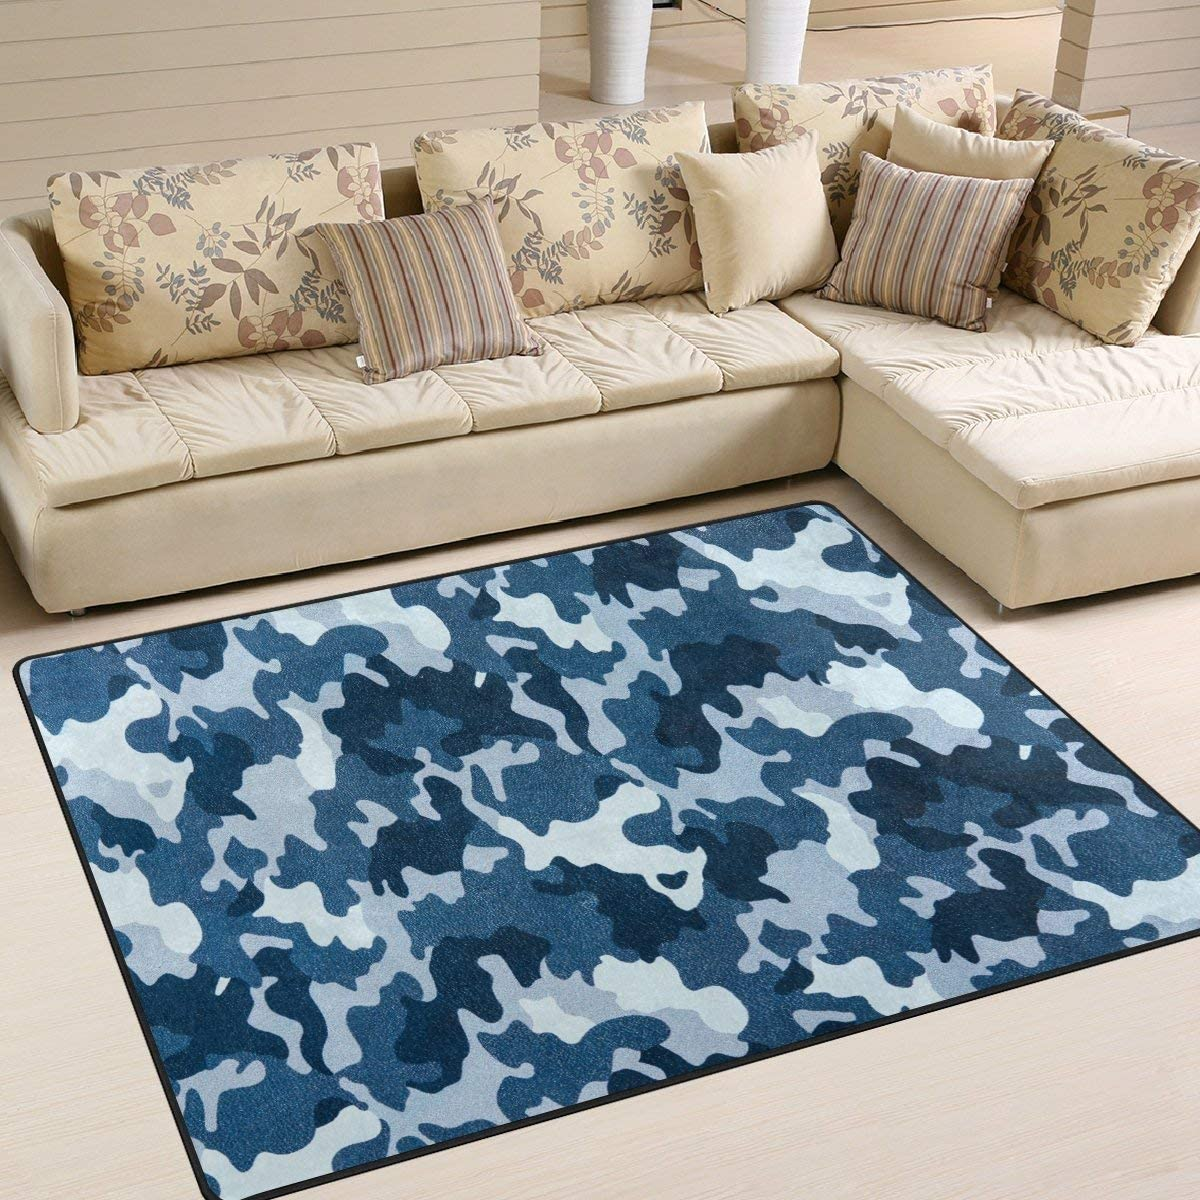 Area Rug 80x58 Inch Columbus Mall Blue Camouflage Bed Military Max 80% OFF Room for Living